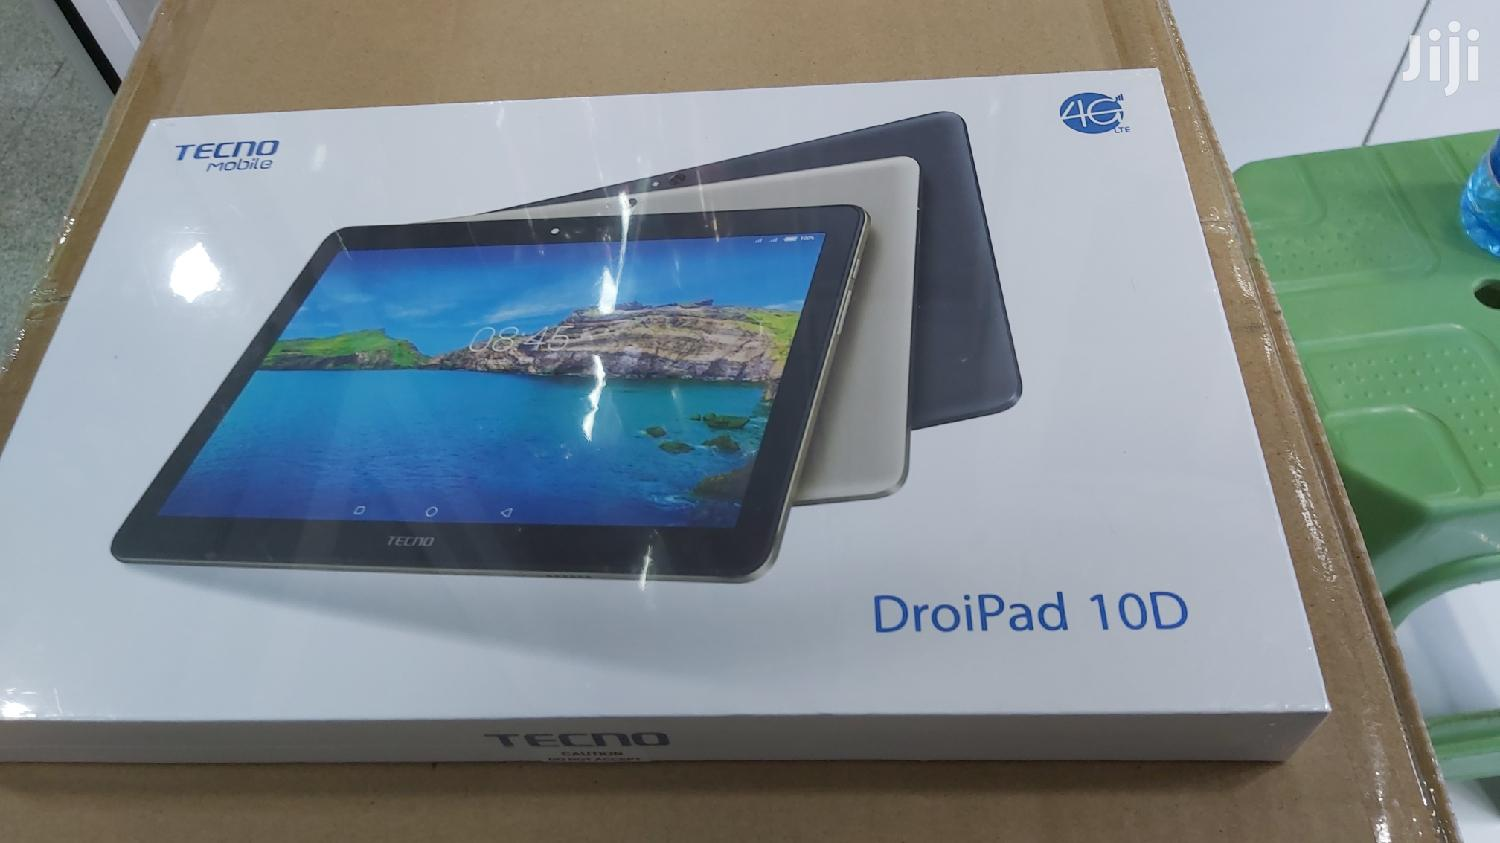 Archive: New Tecno DroidPad 10 Pro II 16 GB Black